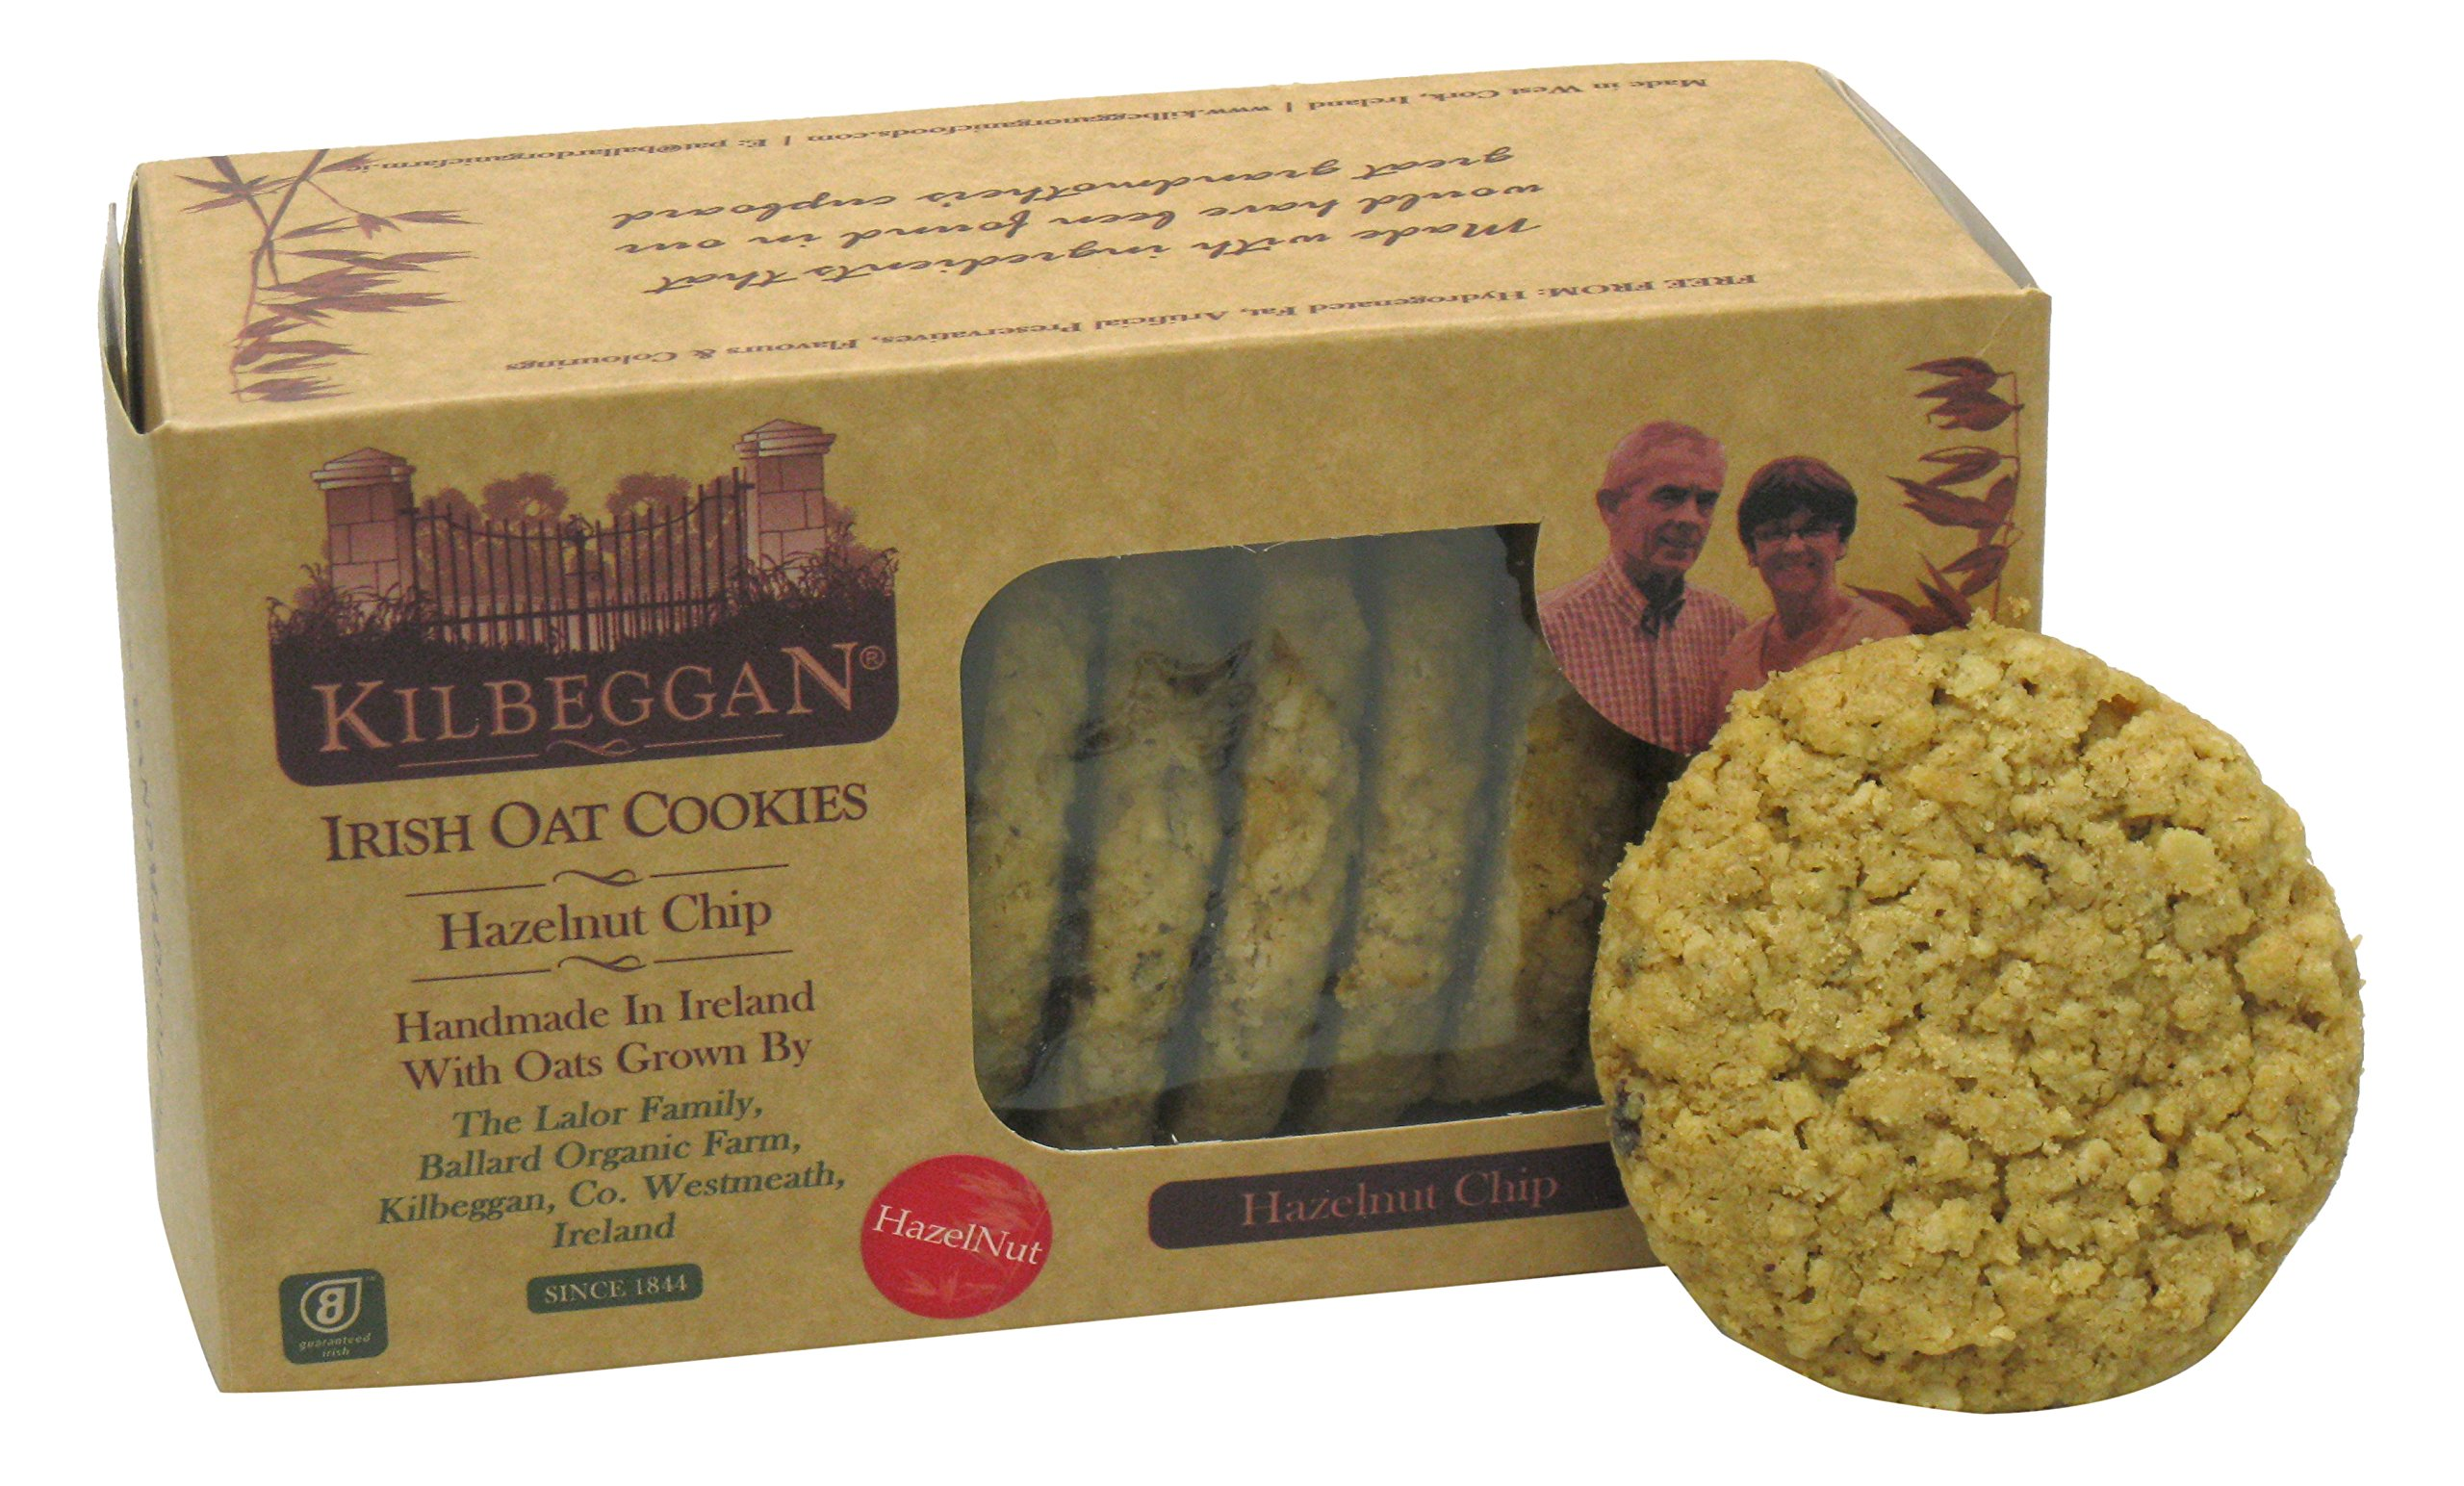 Kilbeggan Irish Oat Cookies, Hazelnut Chip, 7 Ounce